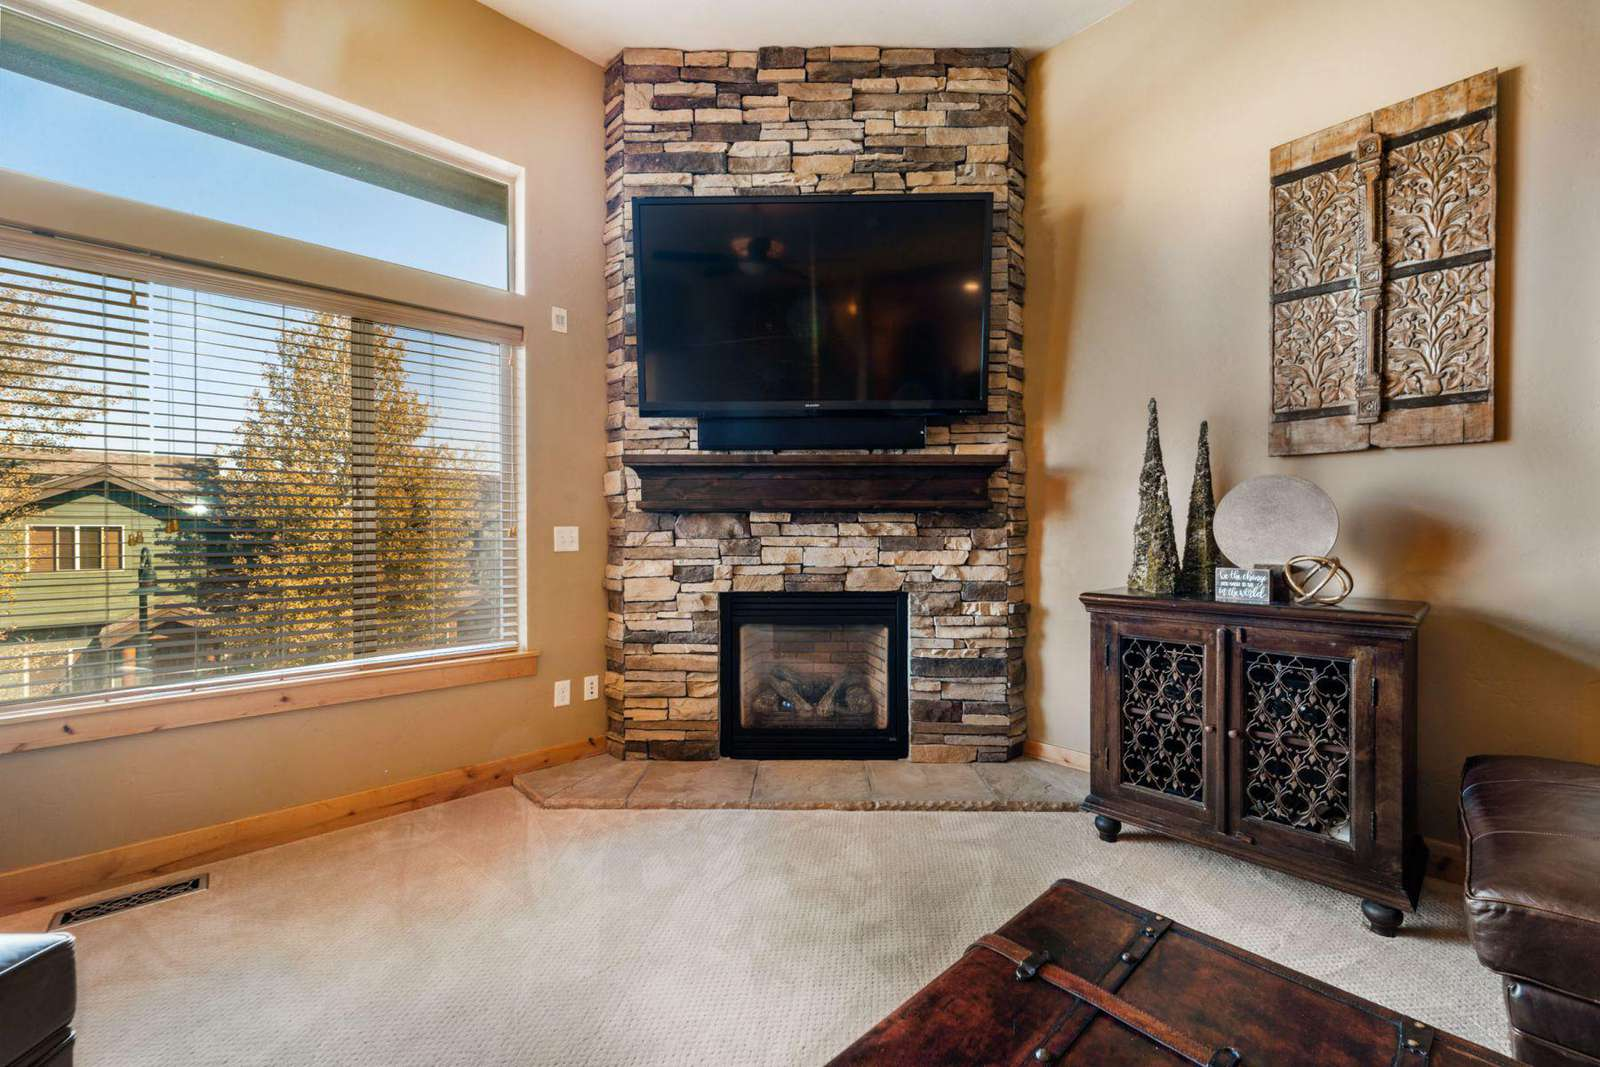 TV and fireplace for comfort